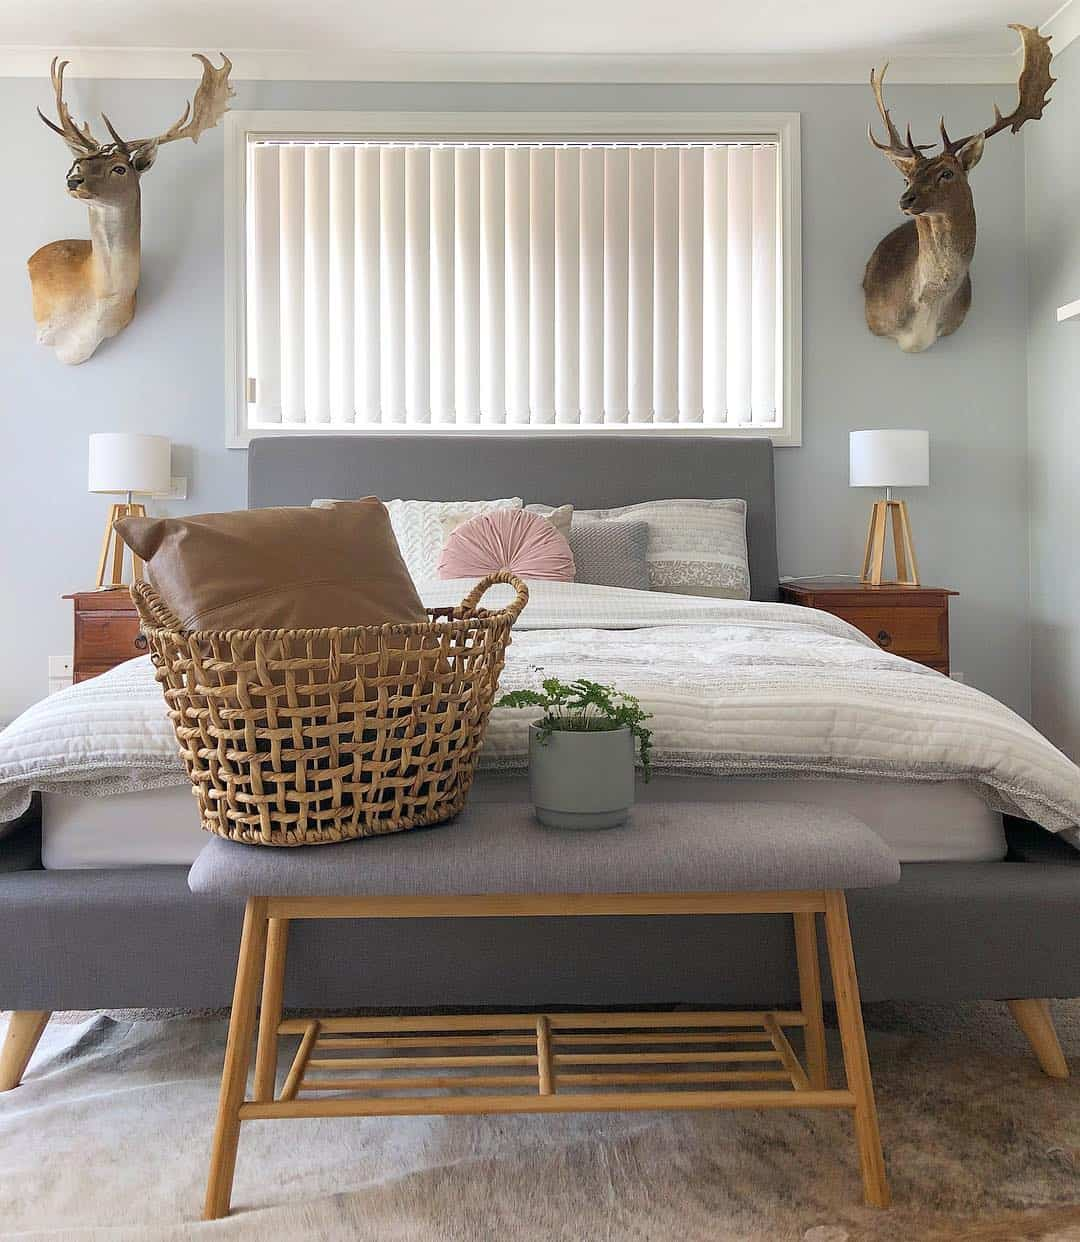 20 Serene Country Bedroom Design Ideas